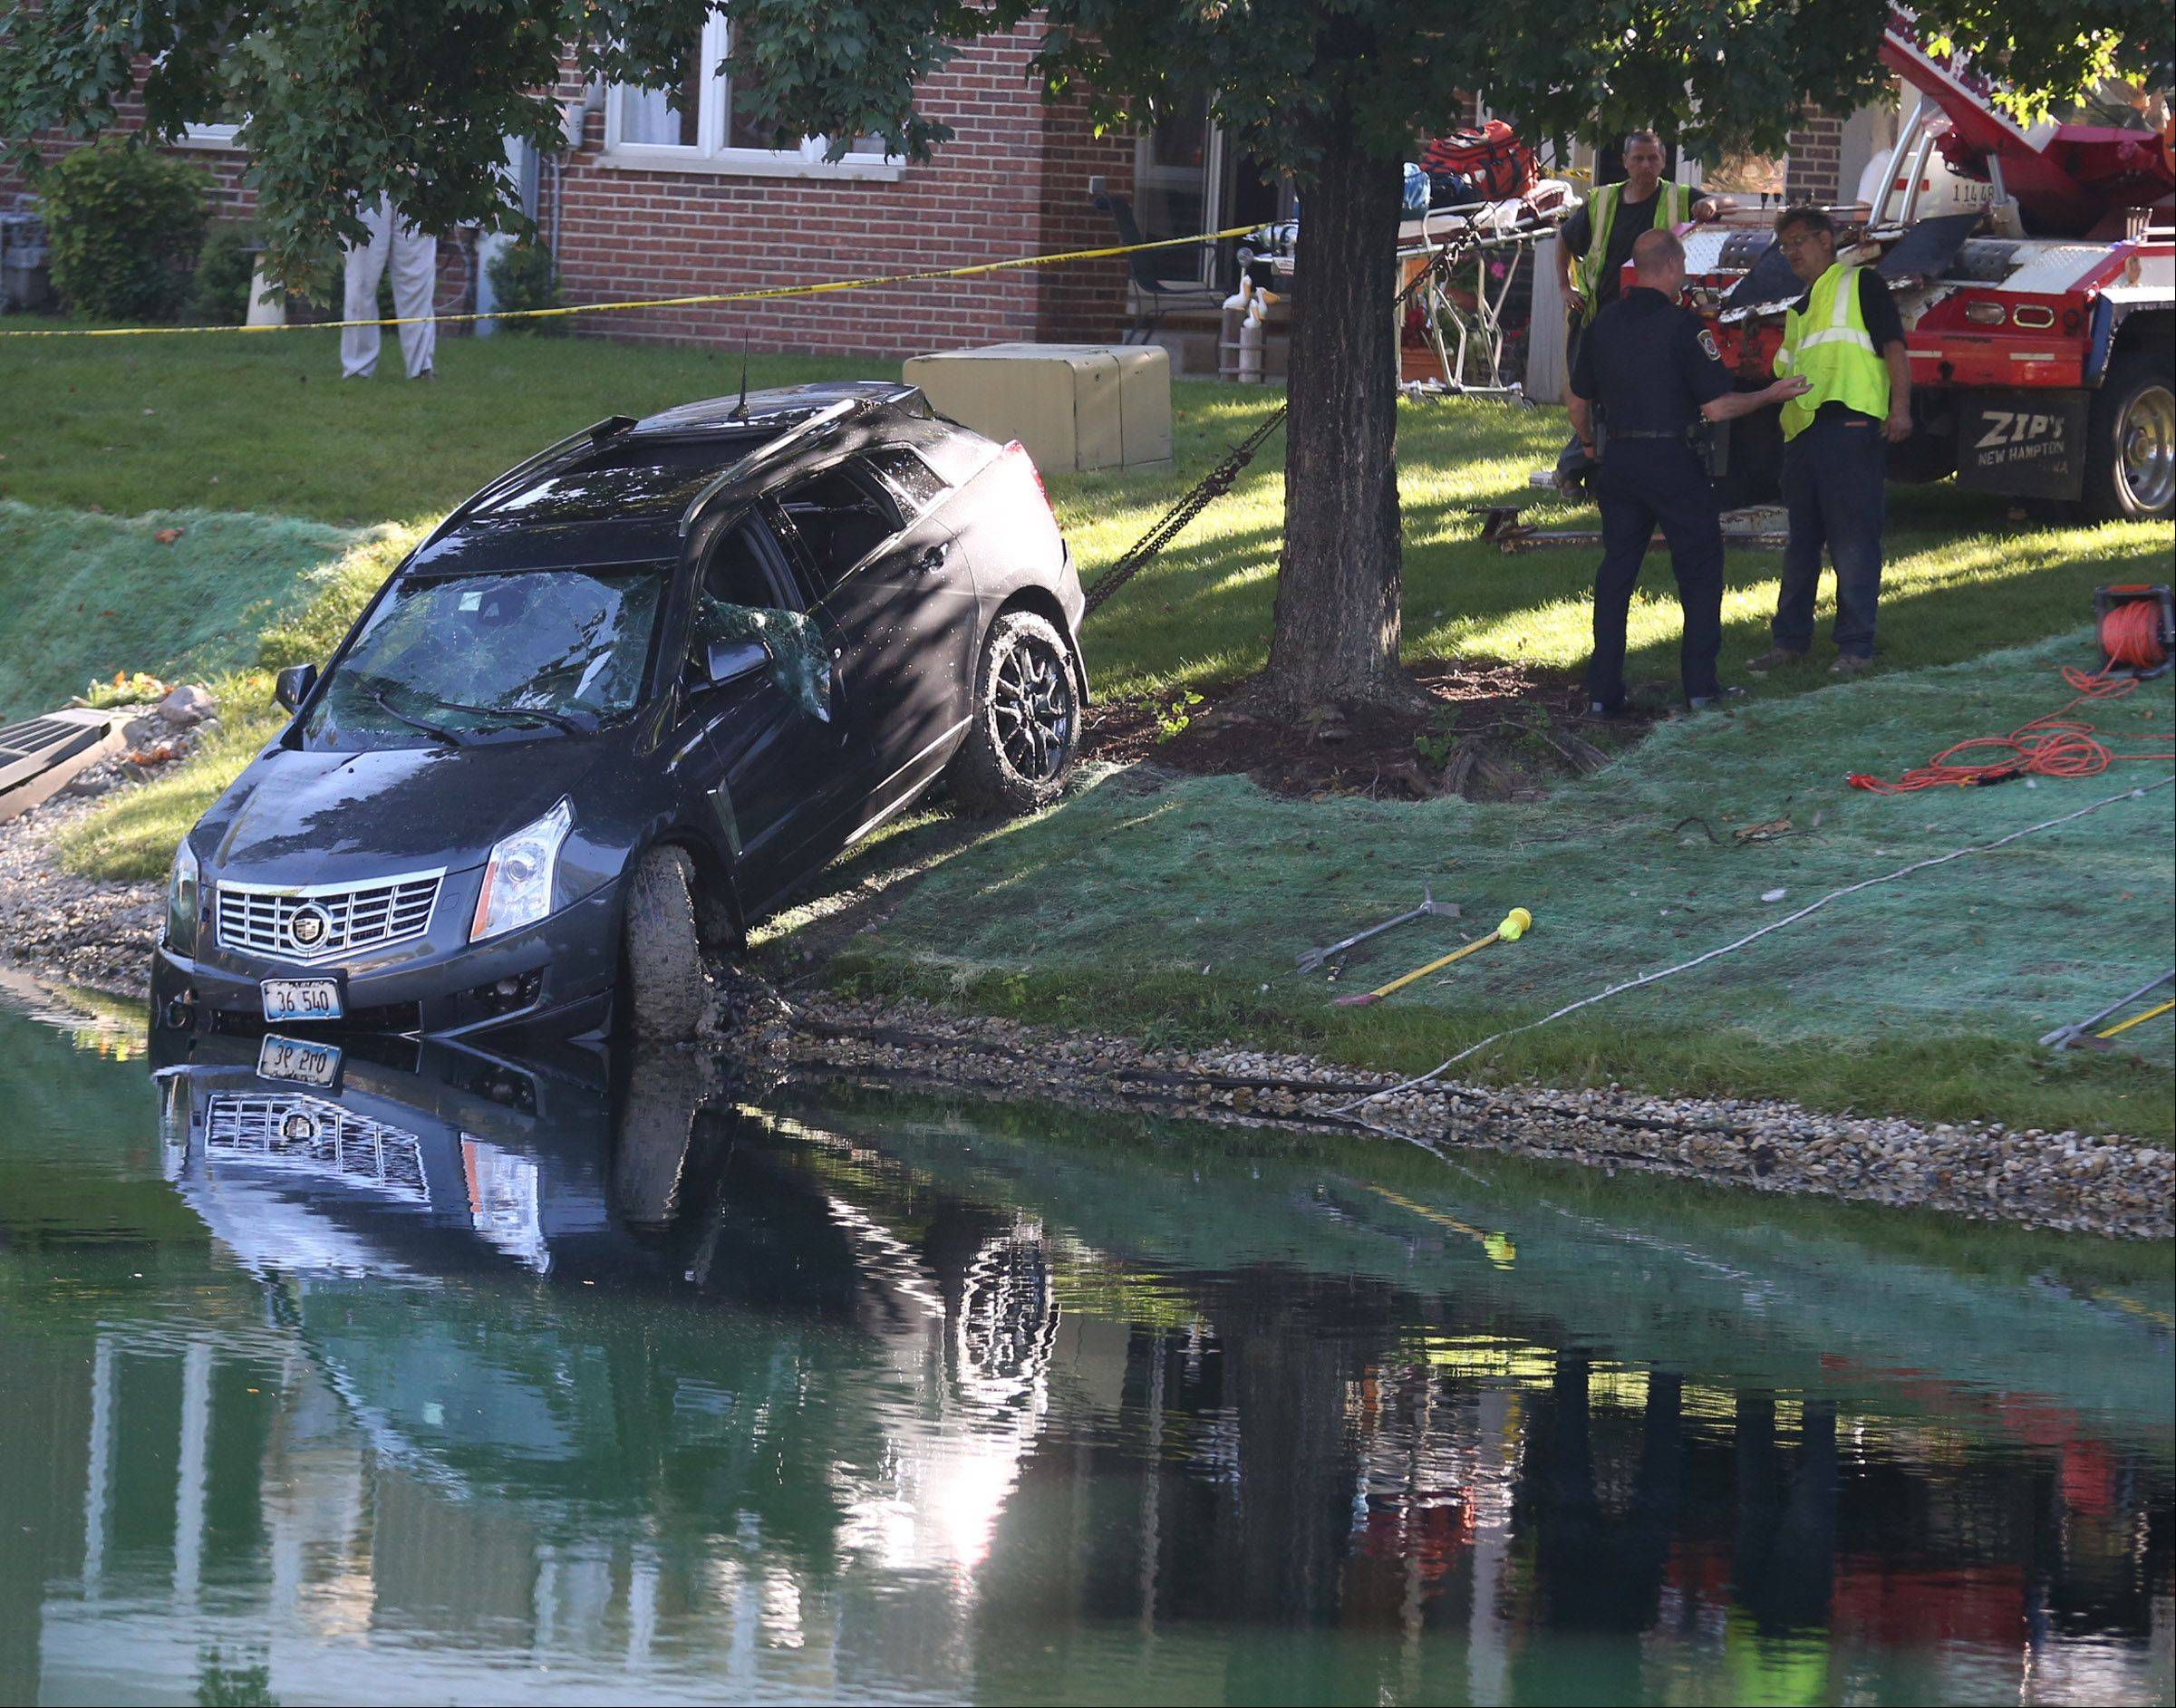 A man was pulled from this car in a pond yesterday in Arlington Heights after neighbors dived in to try to free him from it. They couldn't get a door or window open.